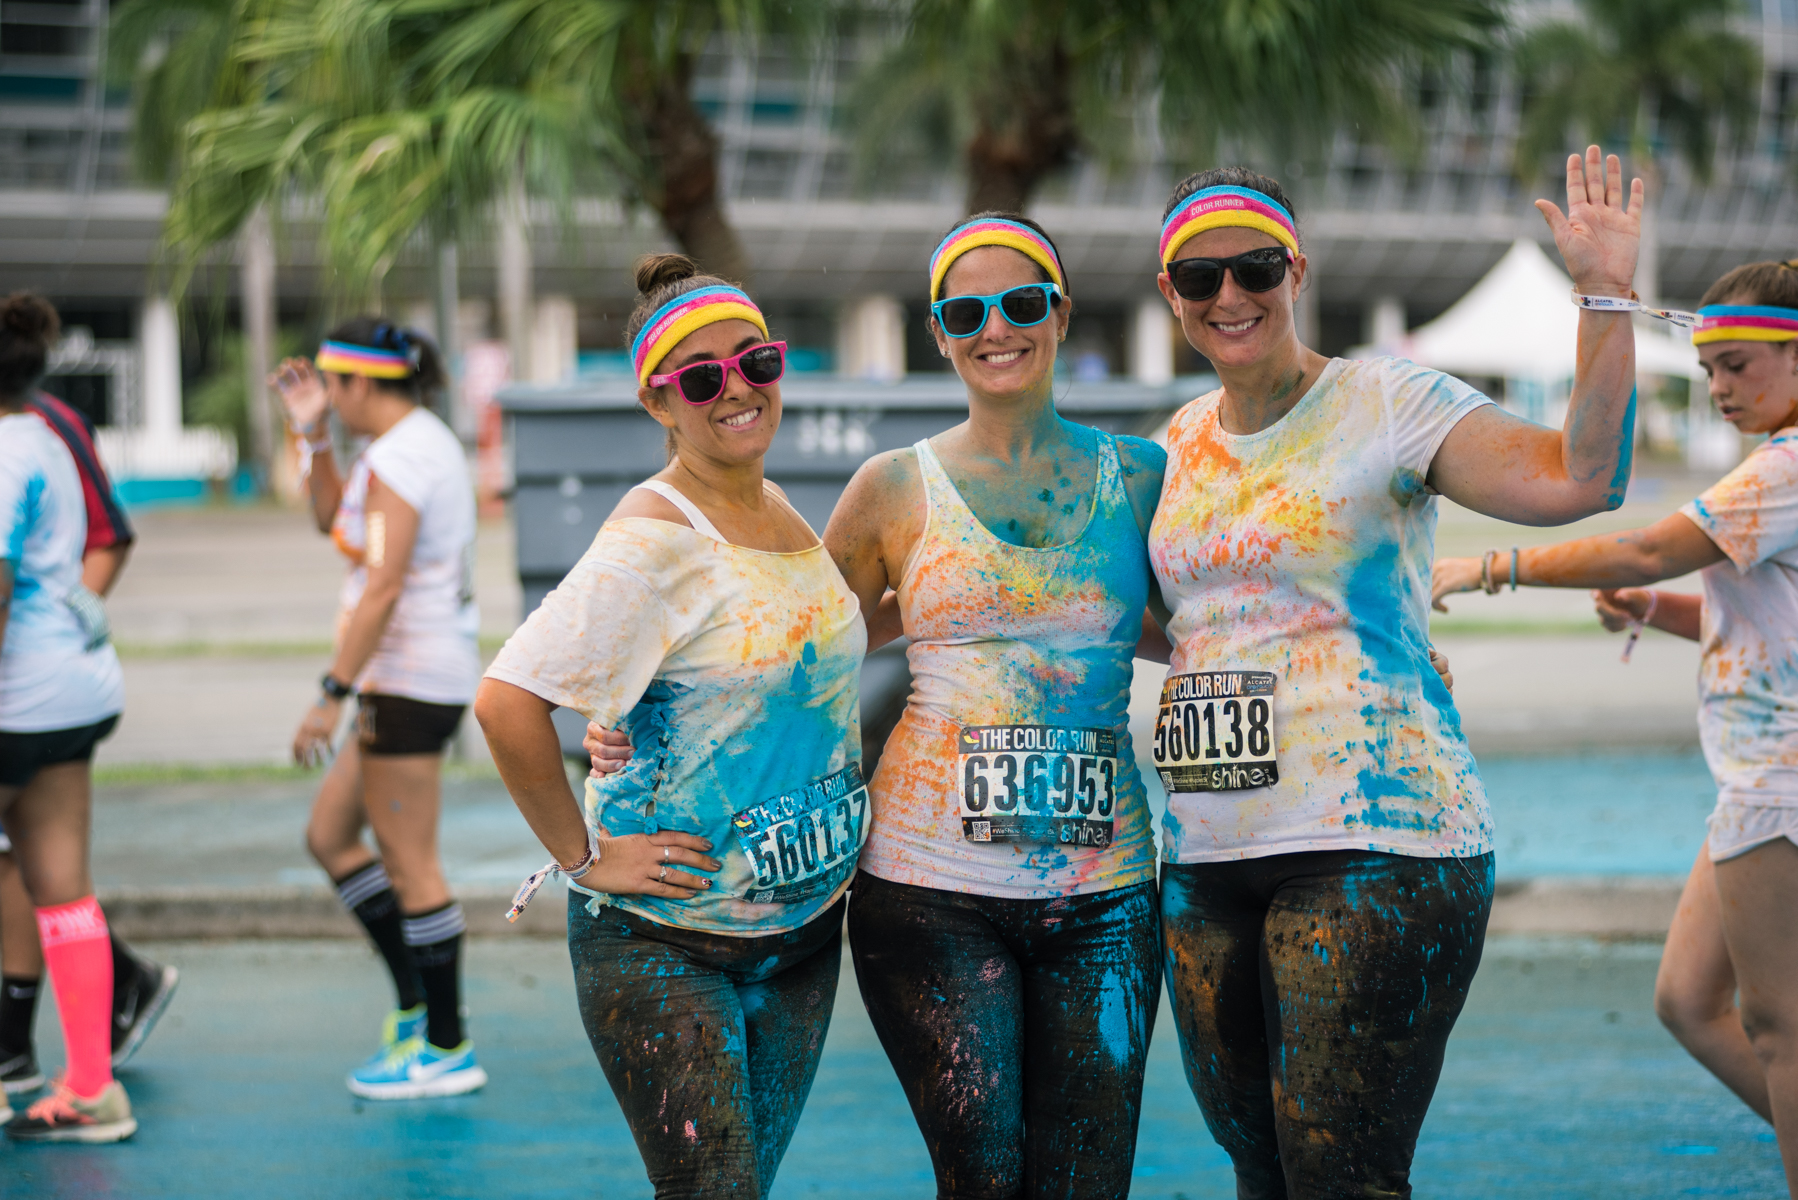 Color_Run-46.jpg